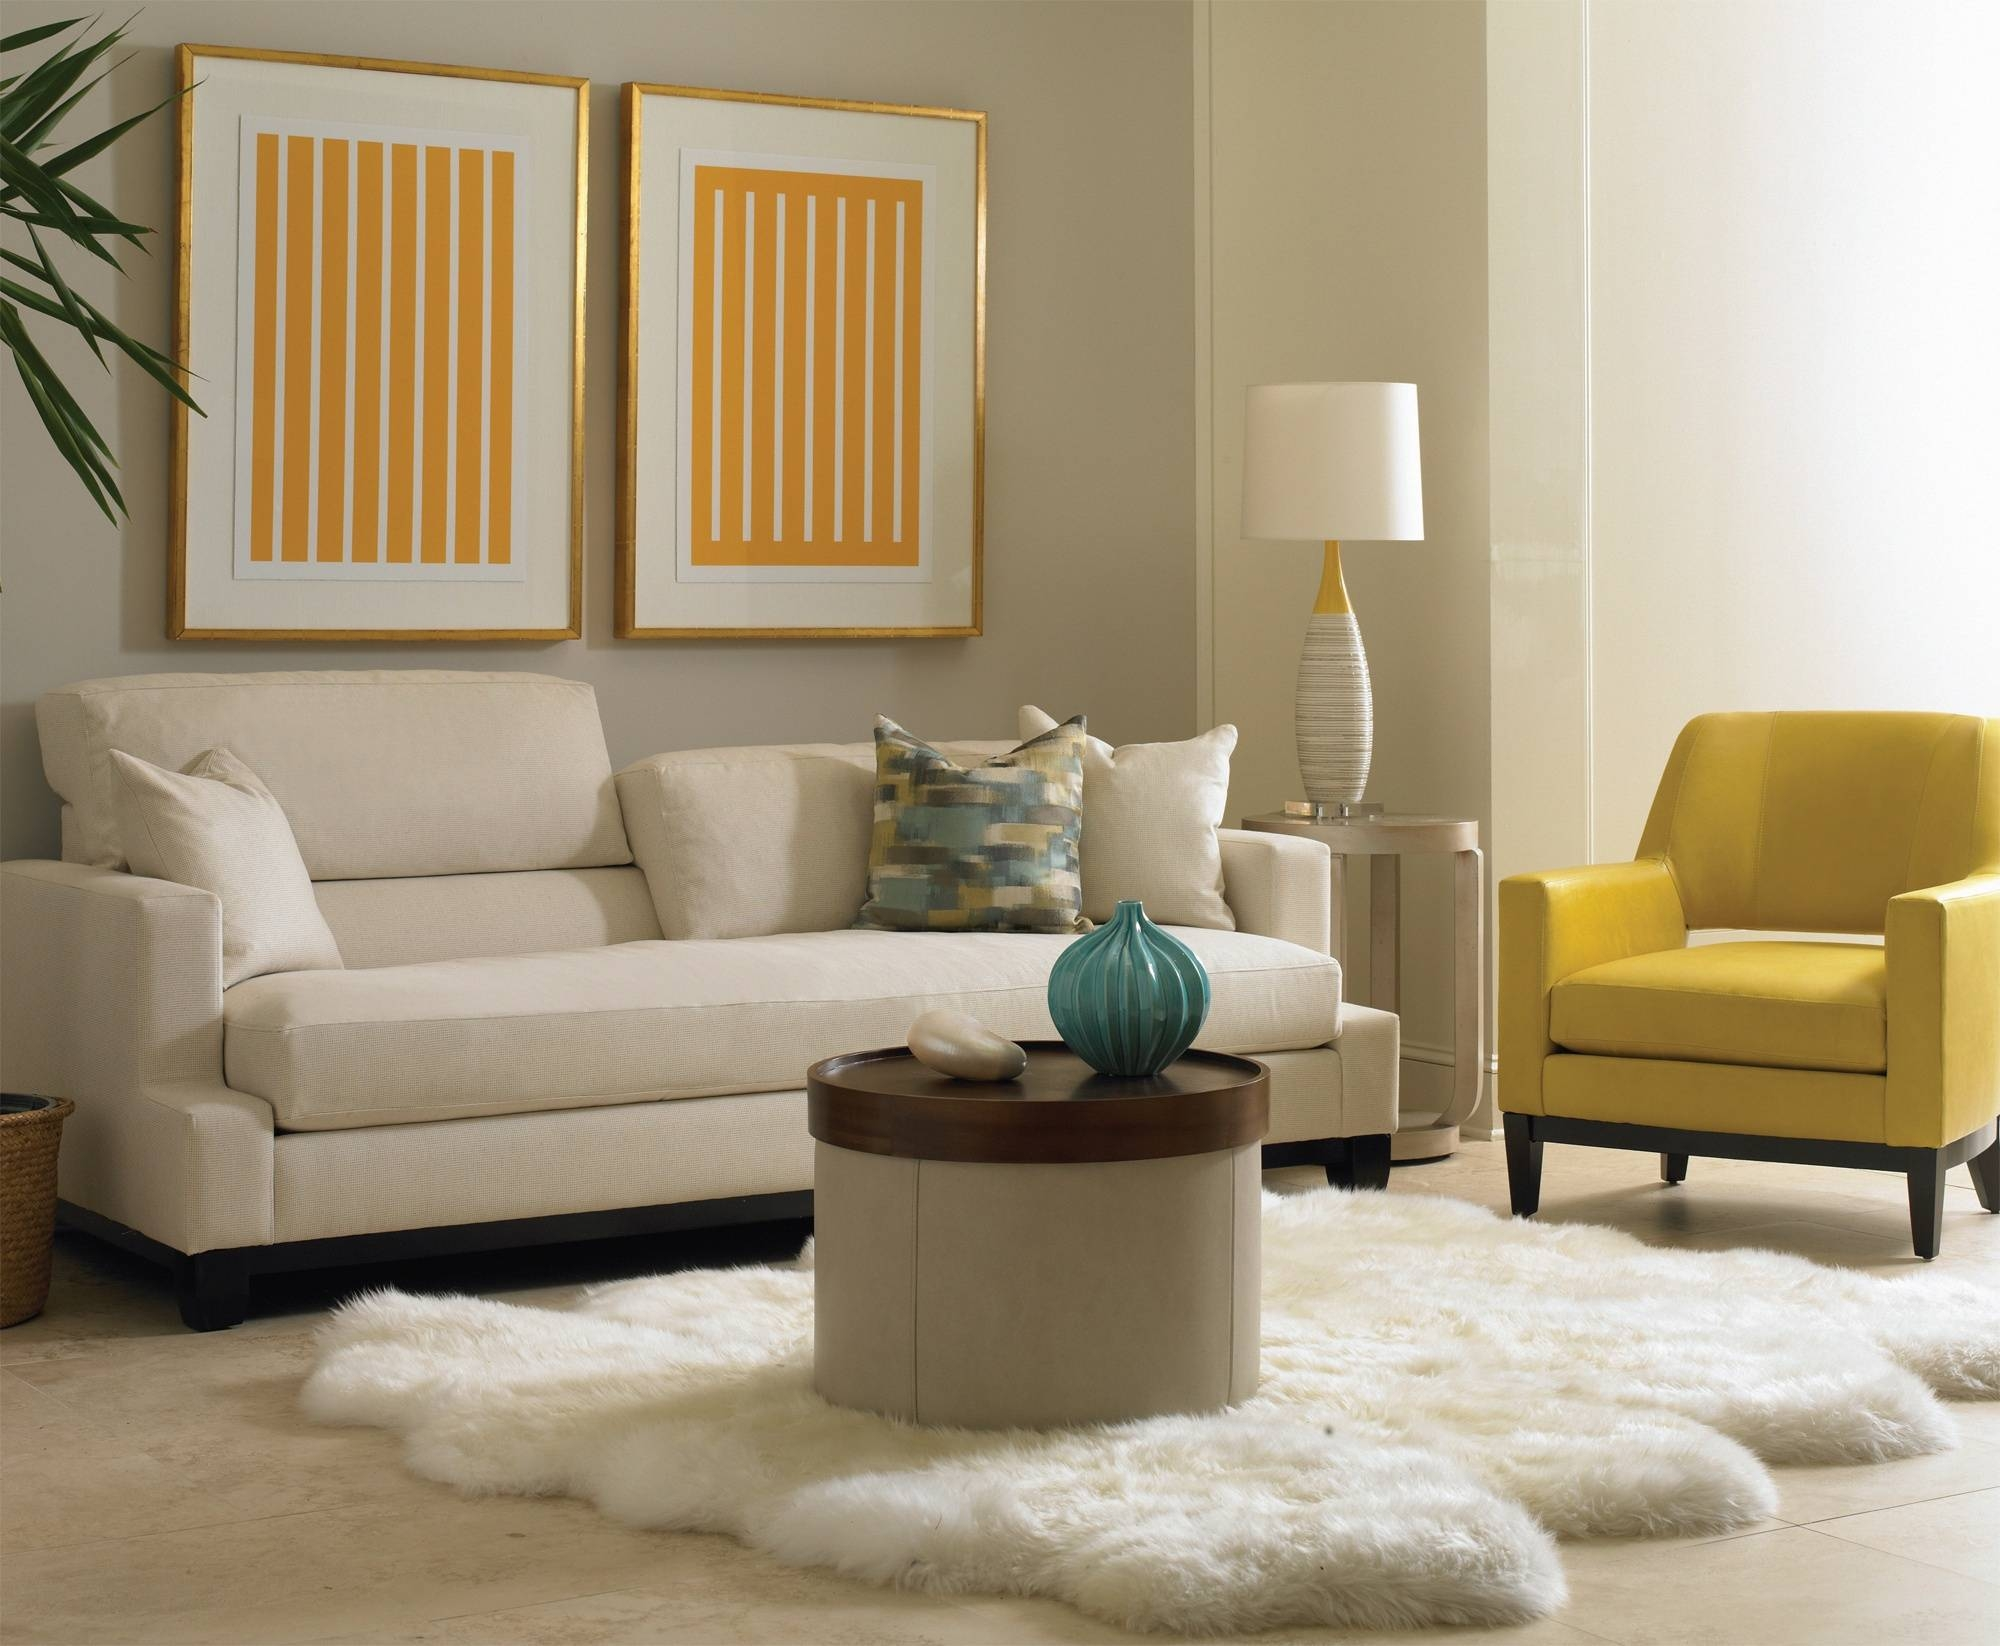 Furniture & Sofa: Finest And Beautiful Furniture For Home With inside Sofas Tampa (Image 6 of 25)